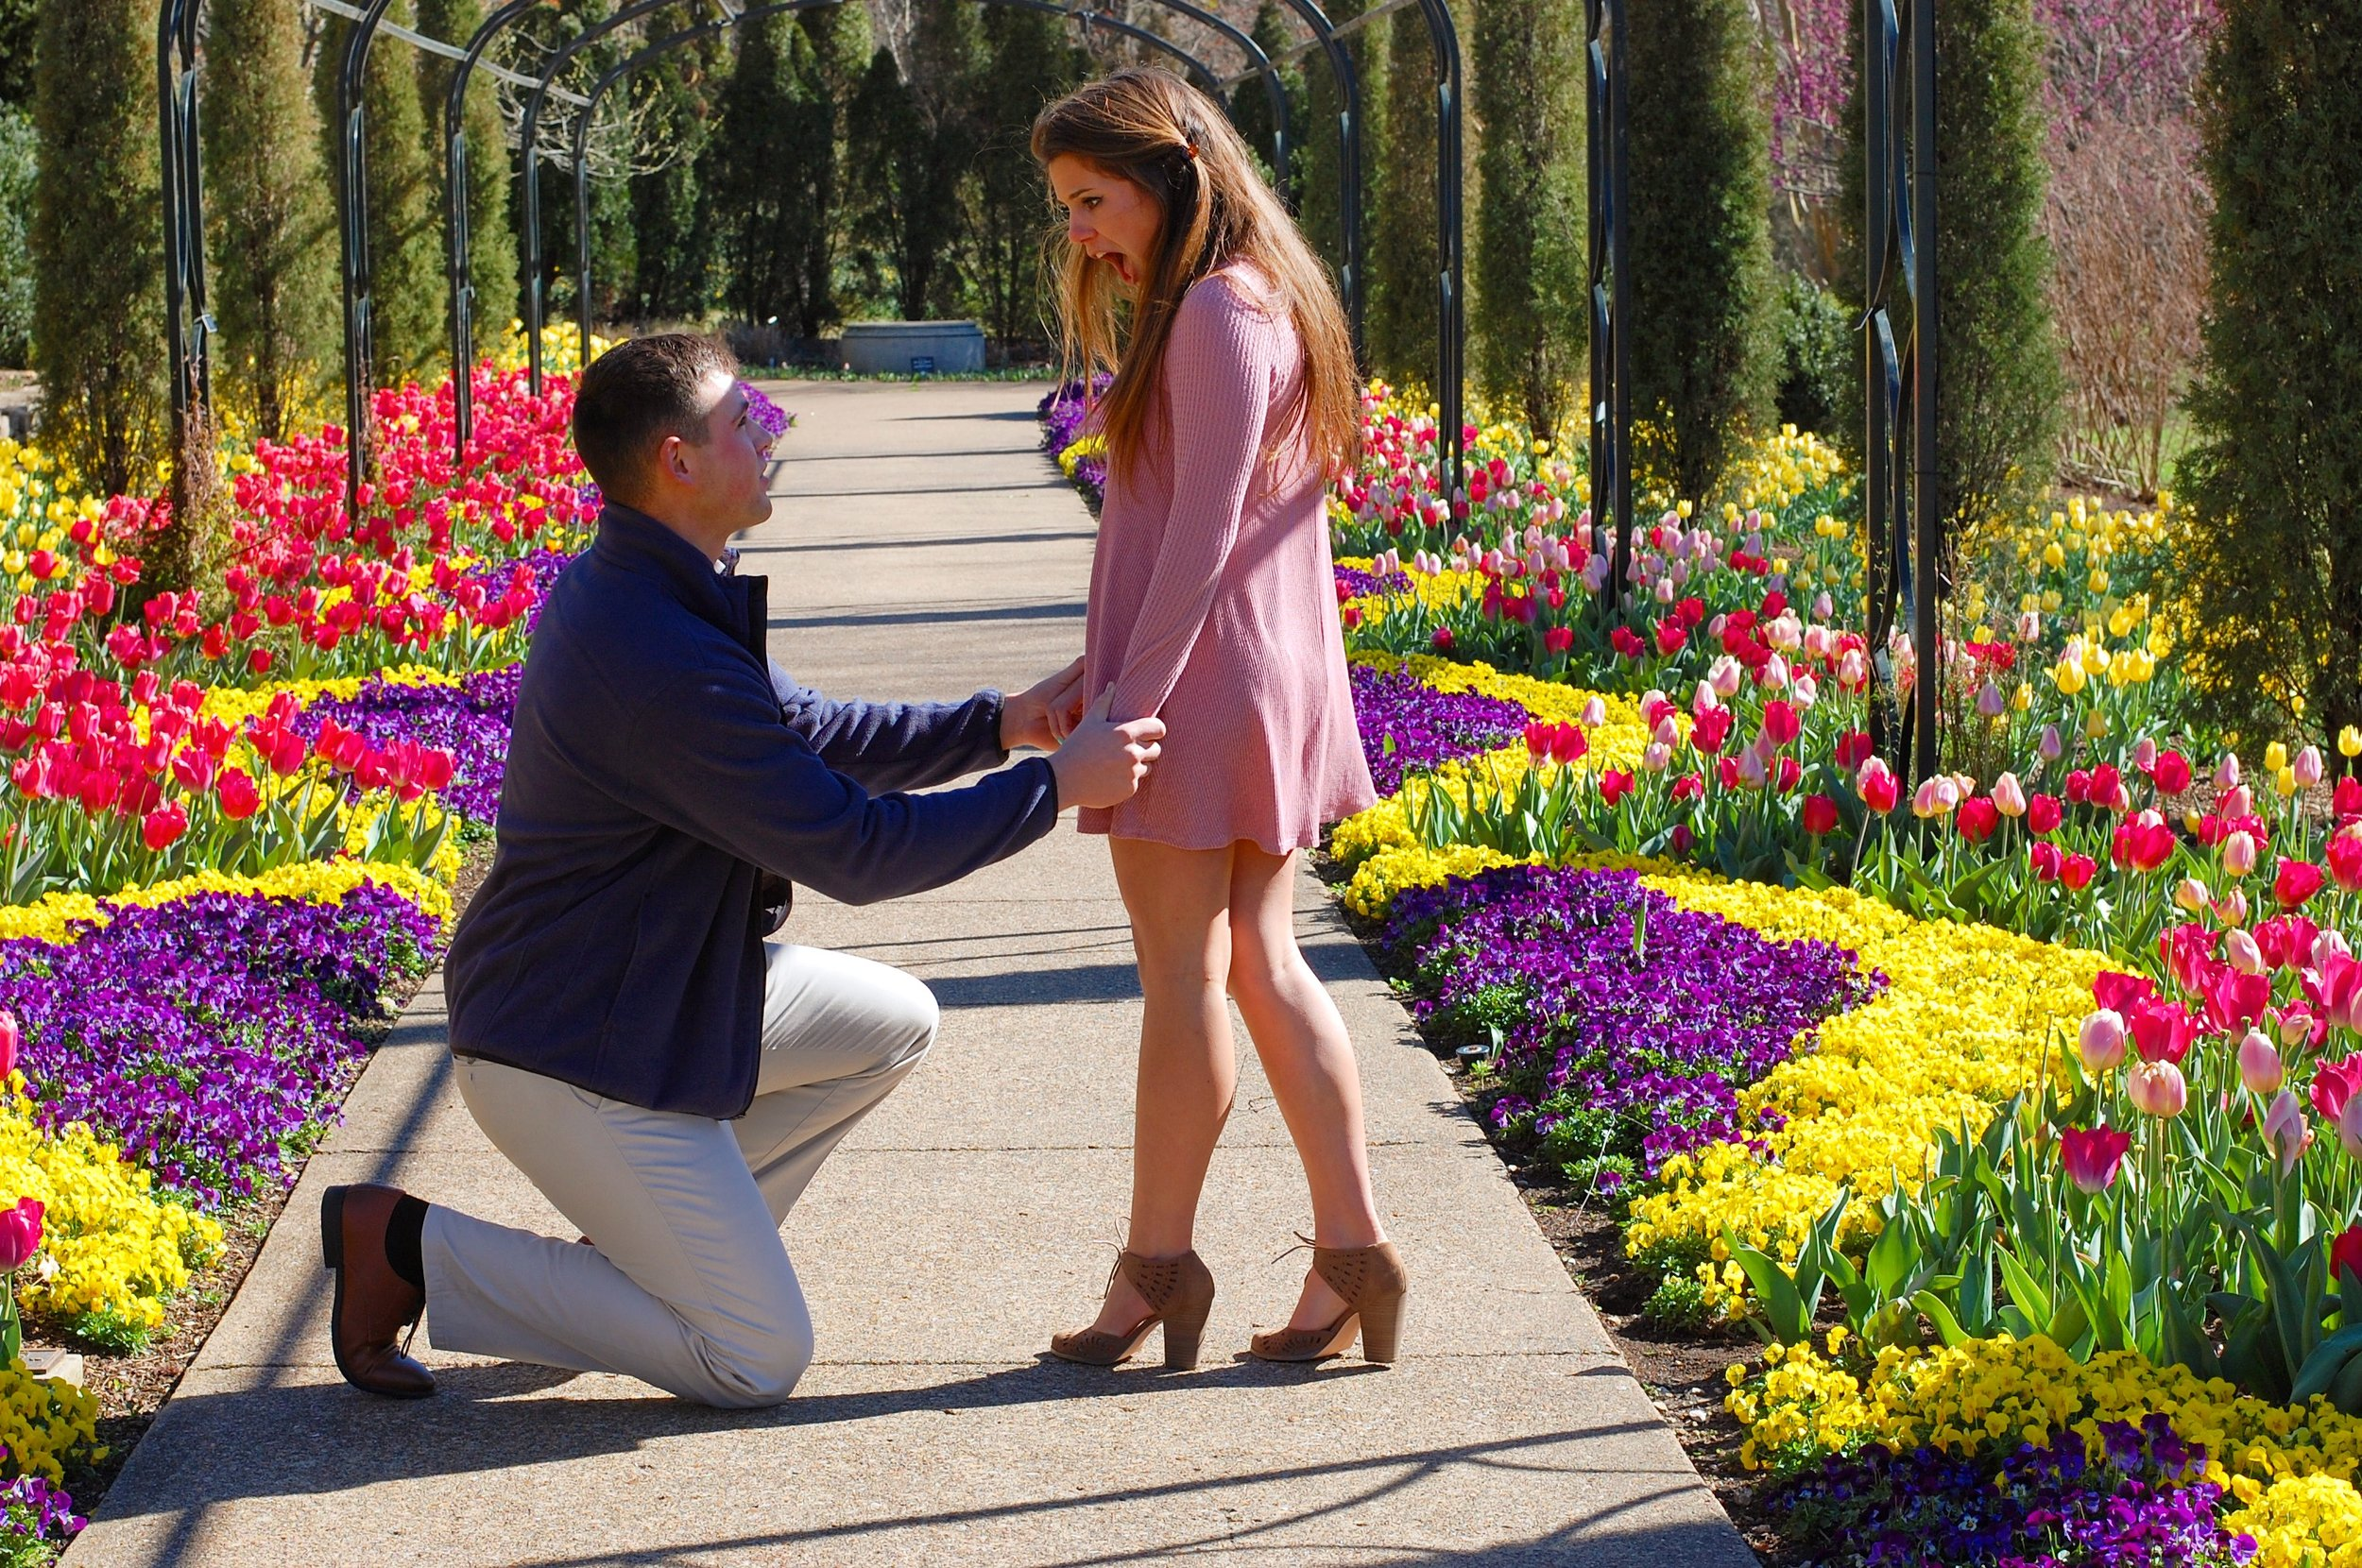 Preston proposing at Cheekwood Gardens in Nashville, TN.  March 2017